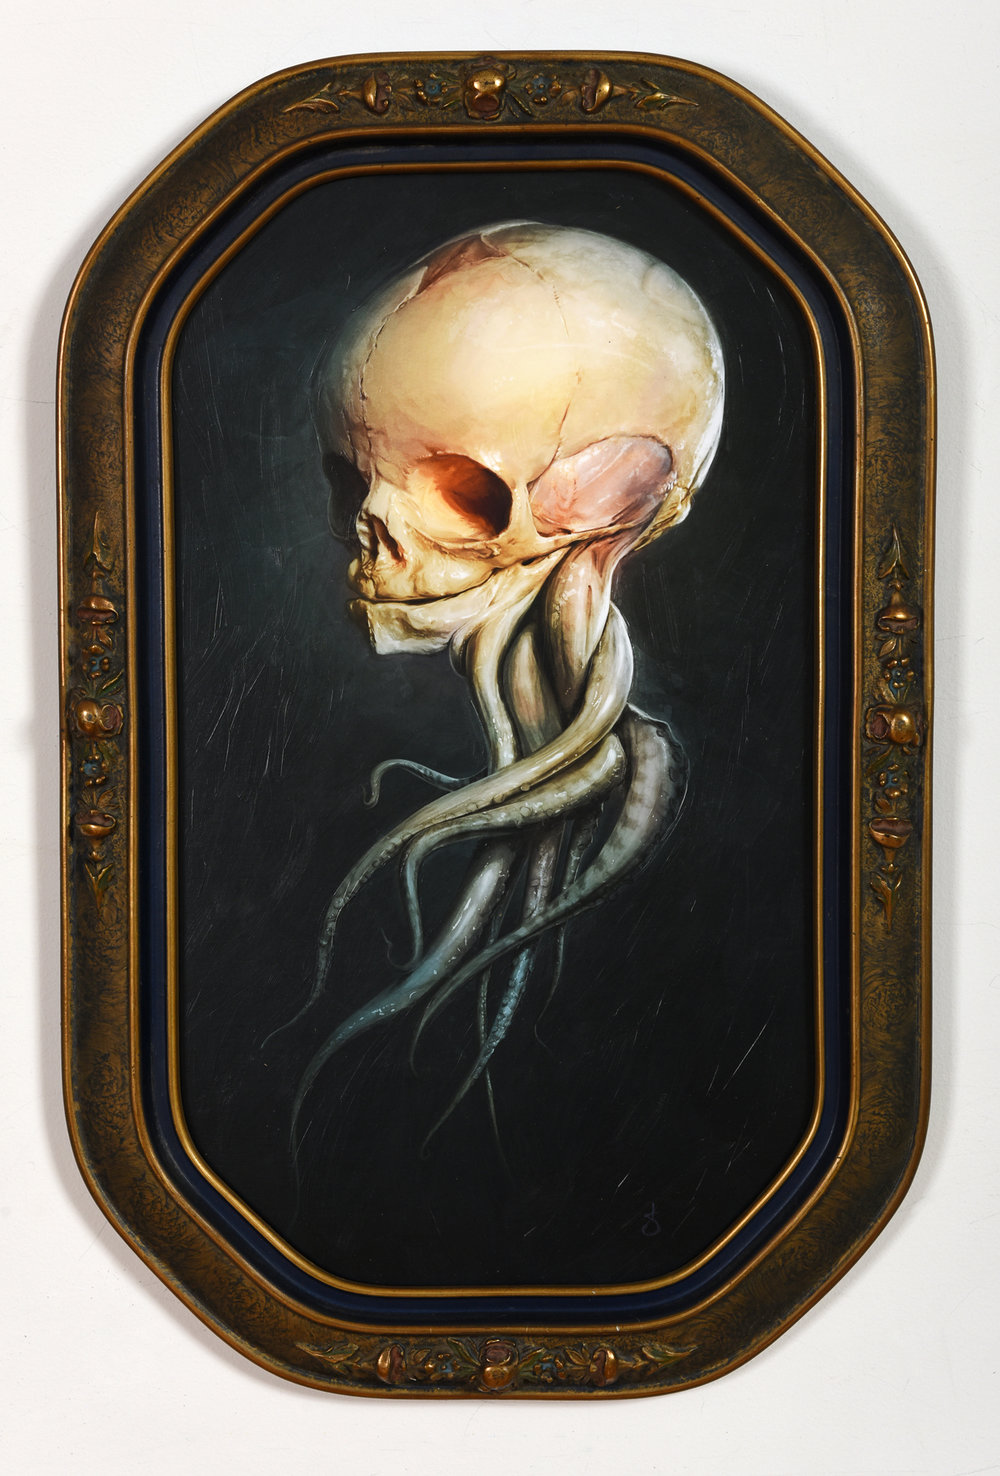 "Homo Marinus -  $750   1 OF 1 MOUNTED, VARNISHED, HAND EMBELLISHED & SIGNED GICLEE PRINT •  11"" X 19"" IN ANTIQUE FRAME  AVAILABLE FOR PURCHASE -  EMAIL FOR MORE INFORMATION"